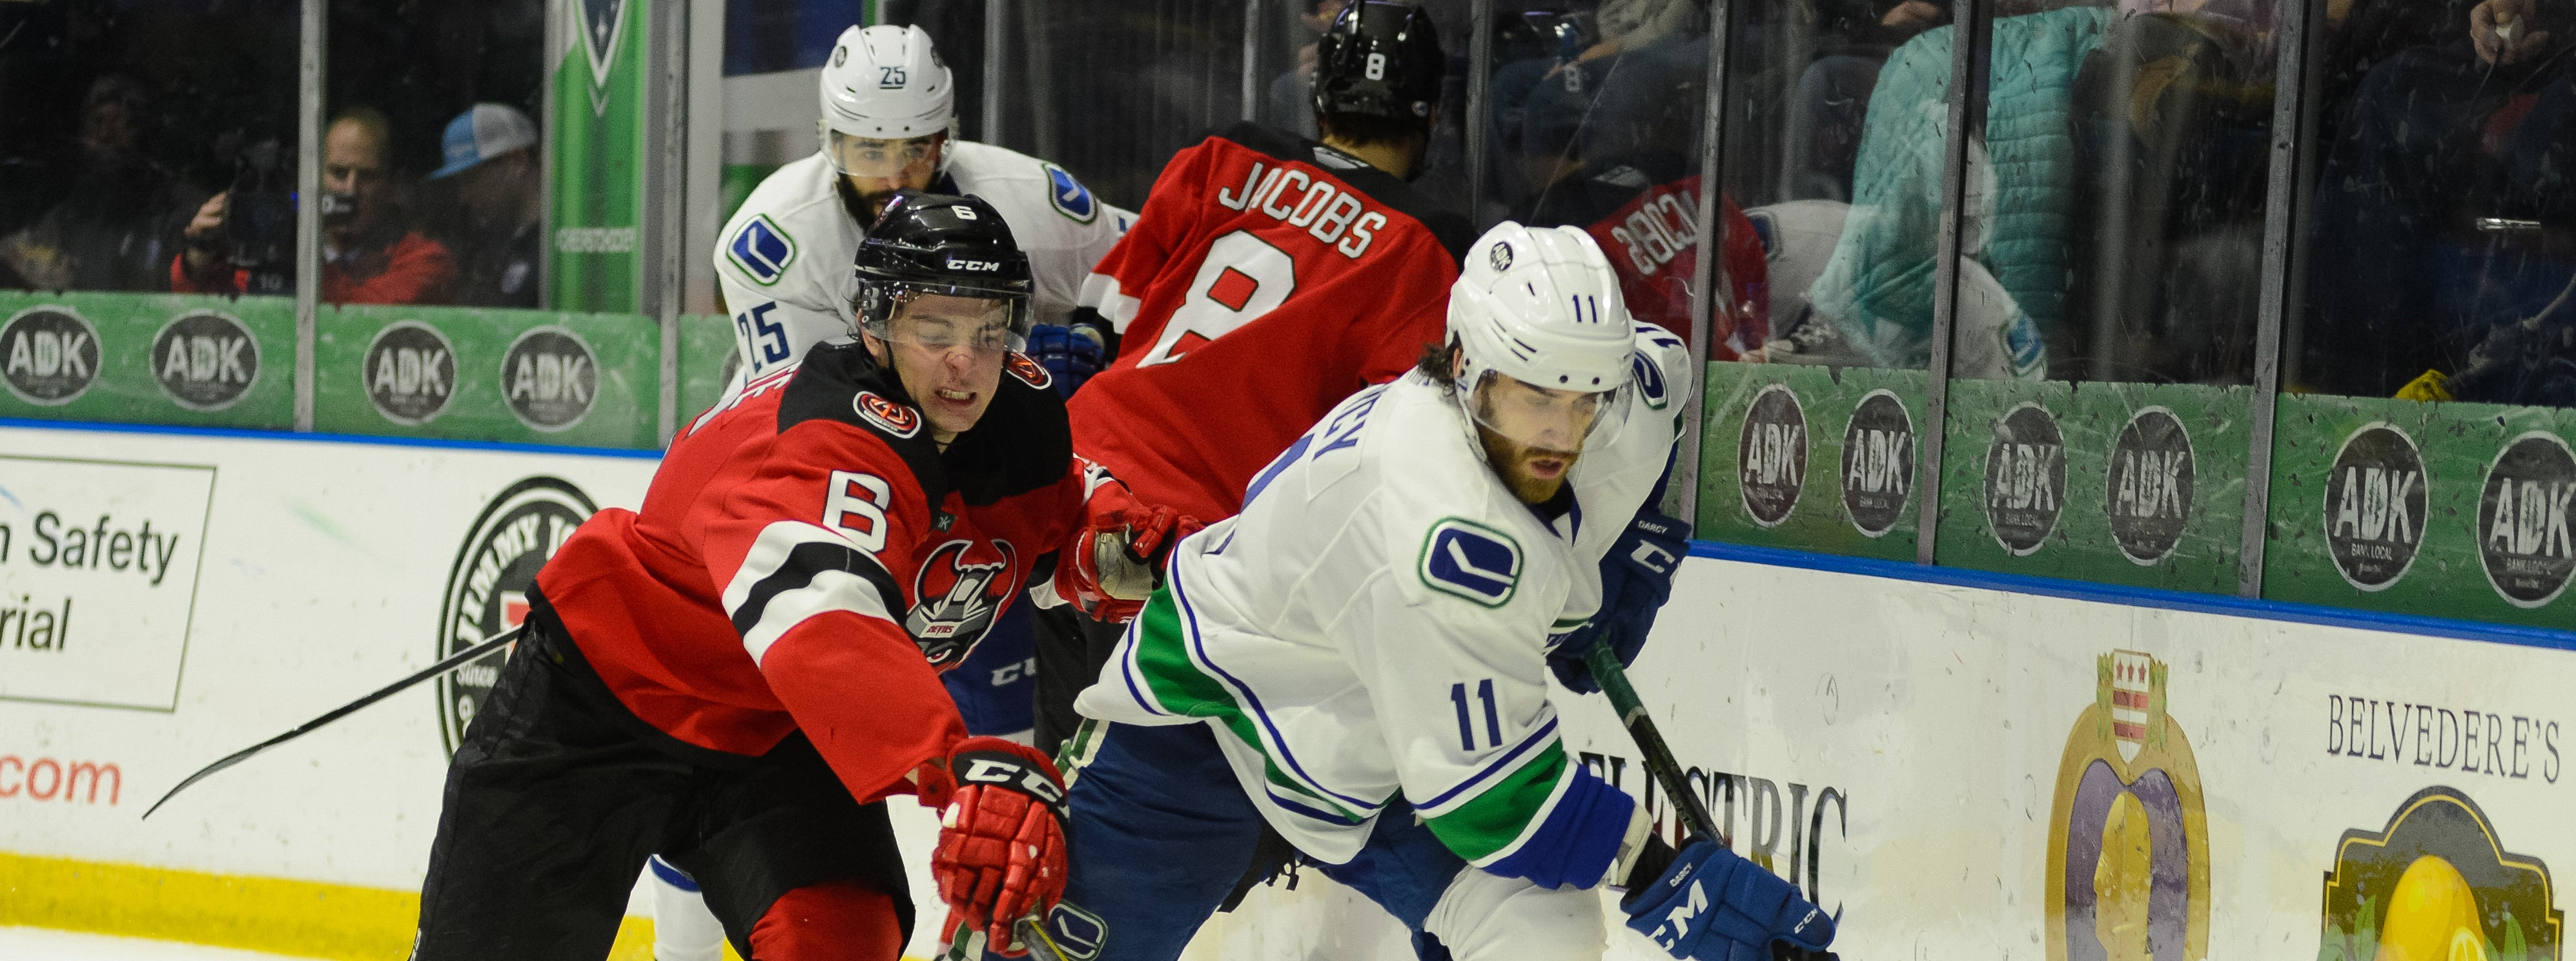 COMETS DUEL DEVILS IN SATURDAY SHOWDOWN